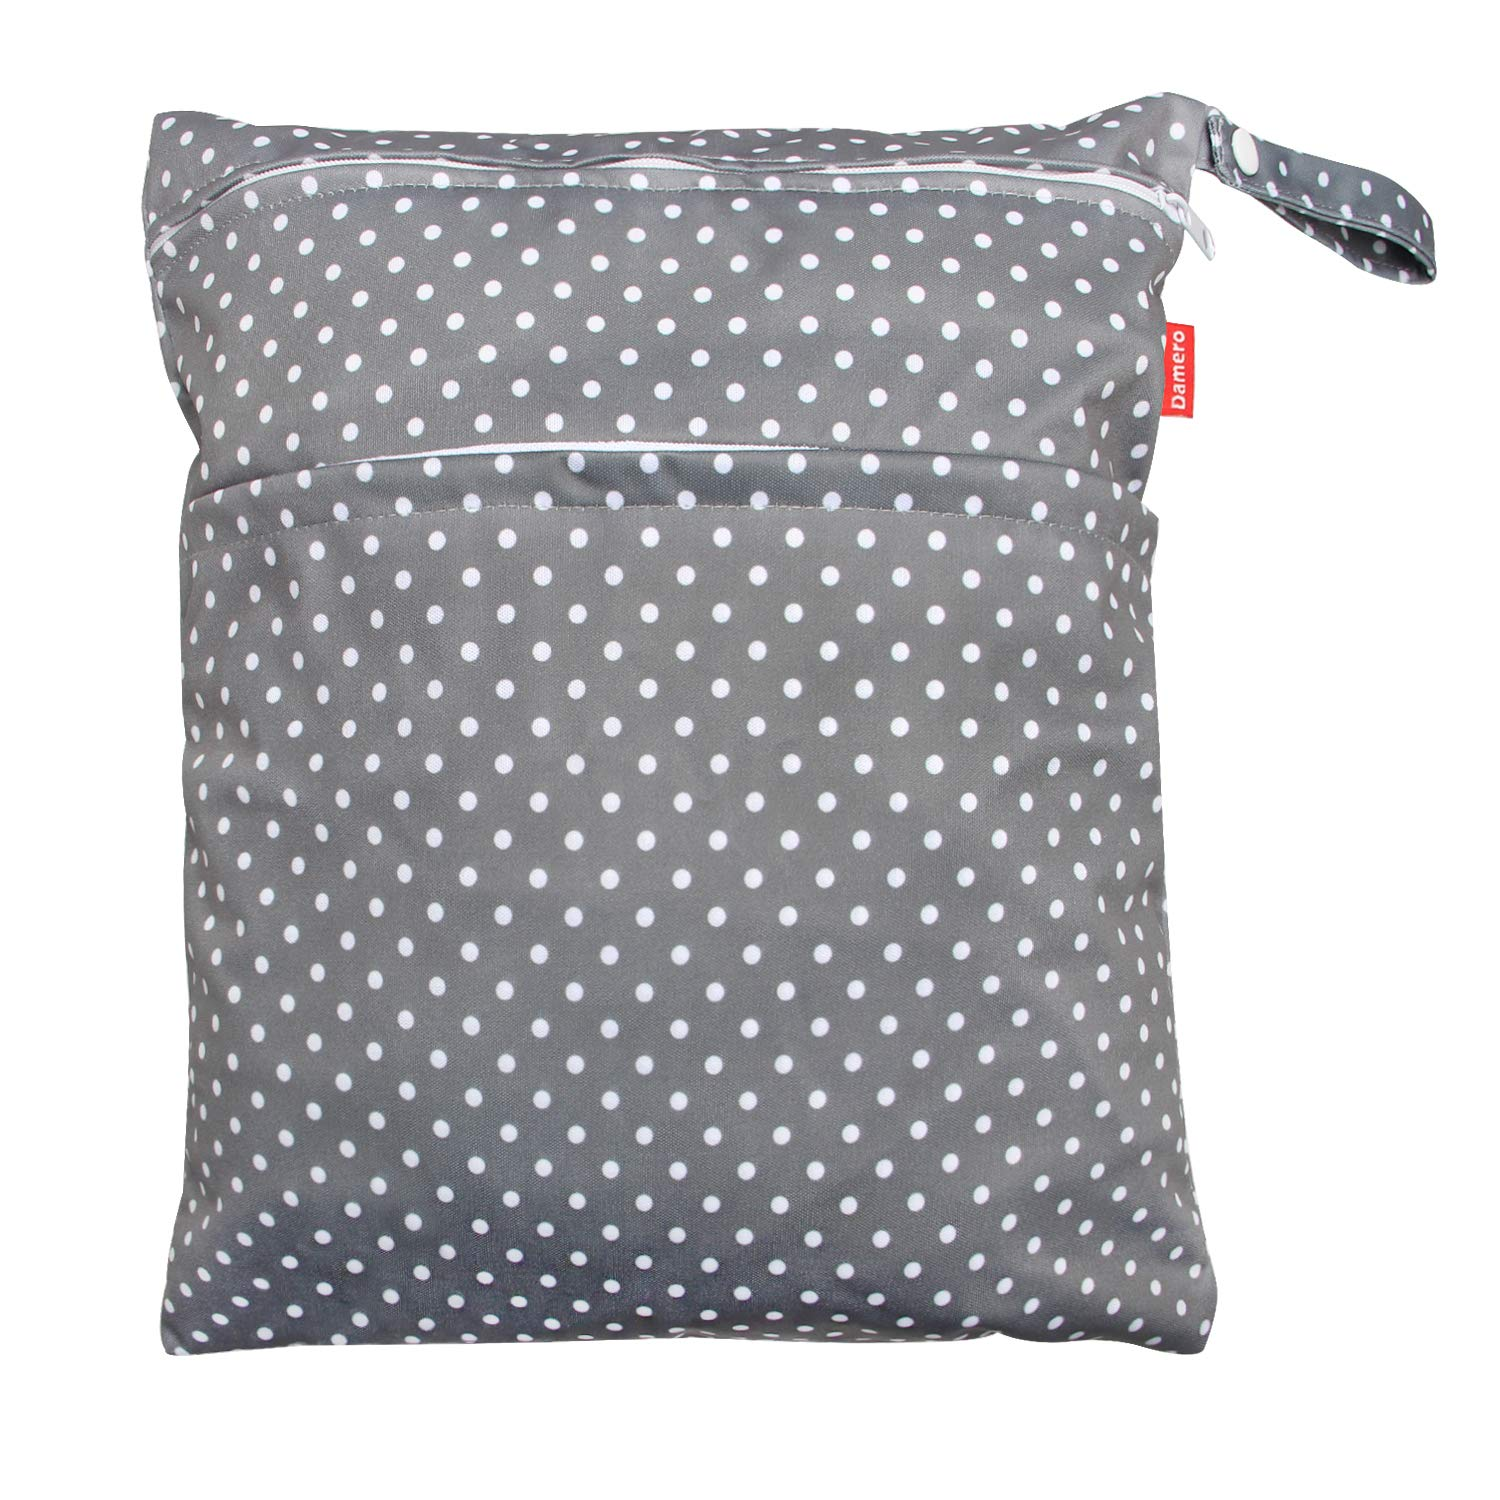 Damero Travel Wet and Dry Bag with Handle for Cloth Diaper, Pumping Parts, Clothes, Swimsuit and More, Easy to Grab and Go (Medium, Gray Dots)